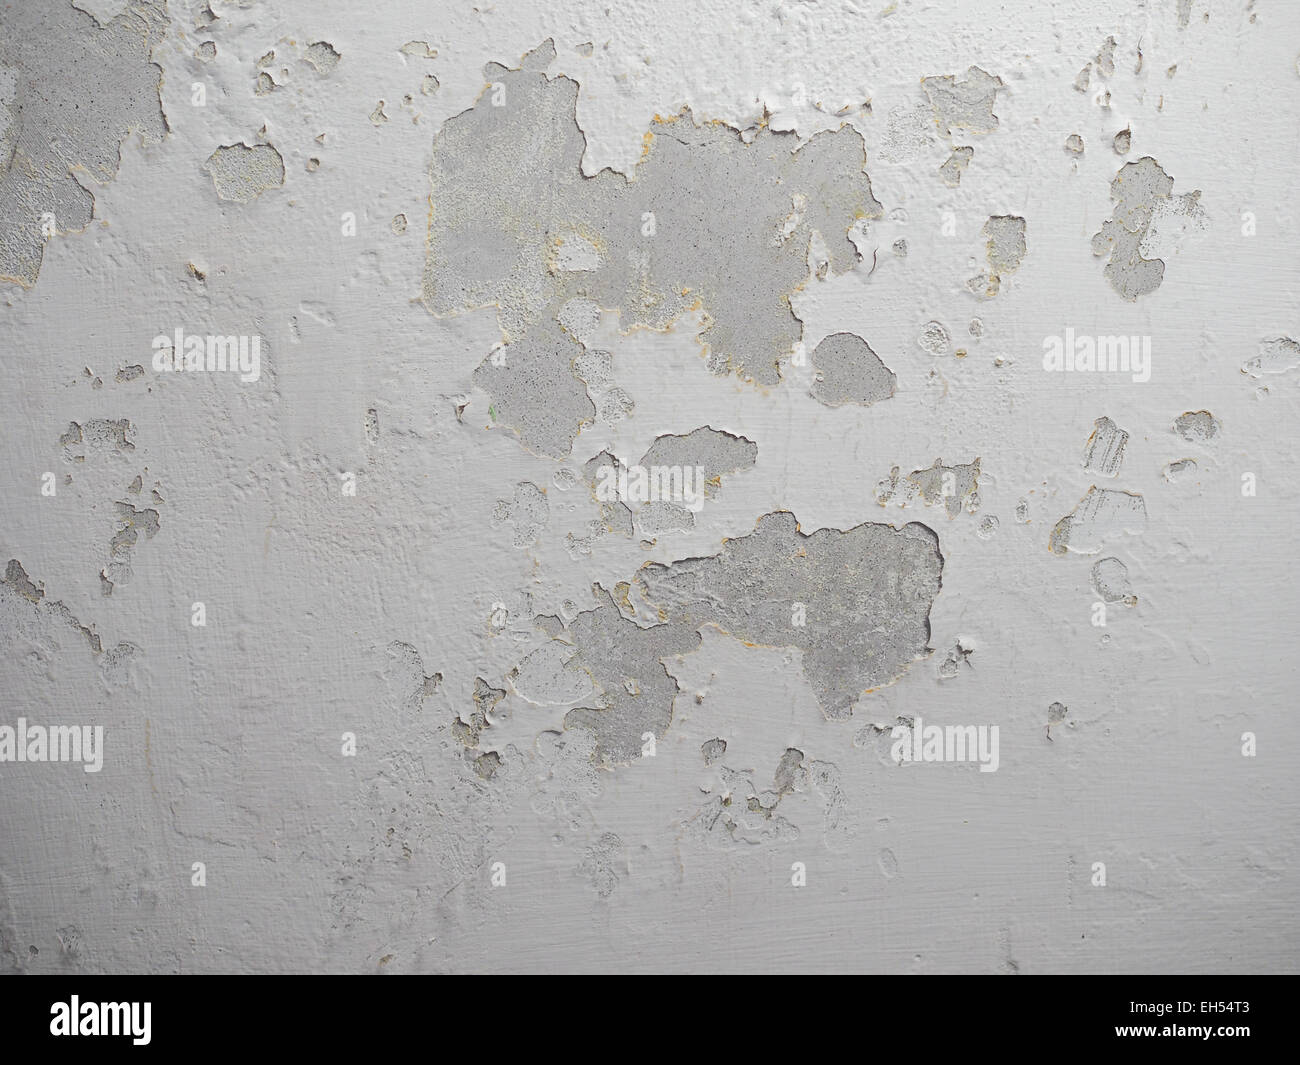 Damage caused by damp and moisture on a wall - Stock Image